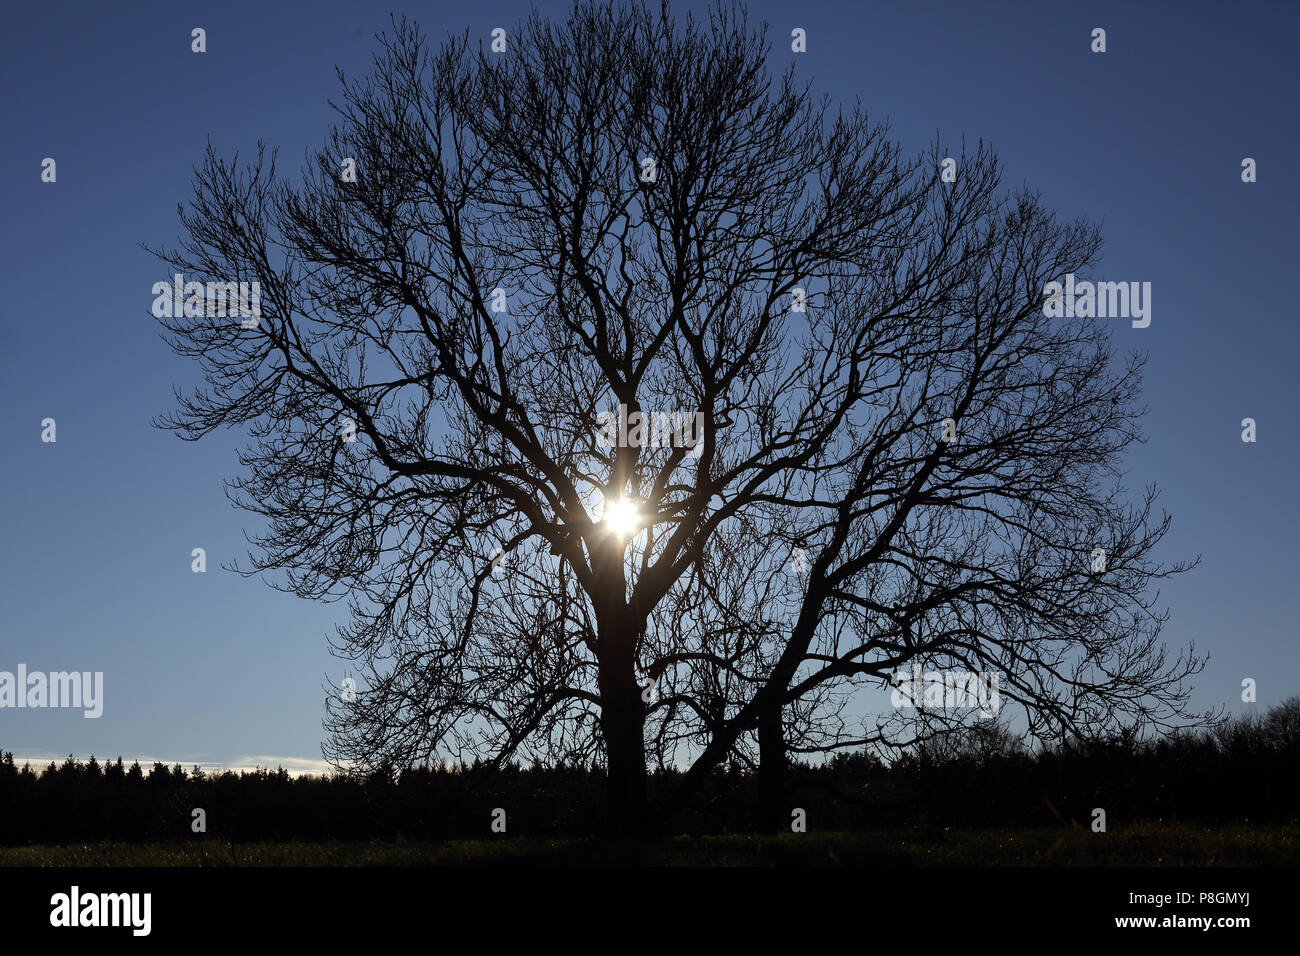 New Kaetwin, Germany, sun shines through a leafless tree in winter - Stock Image